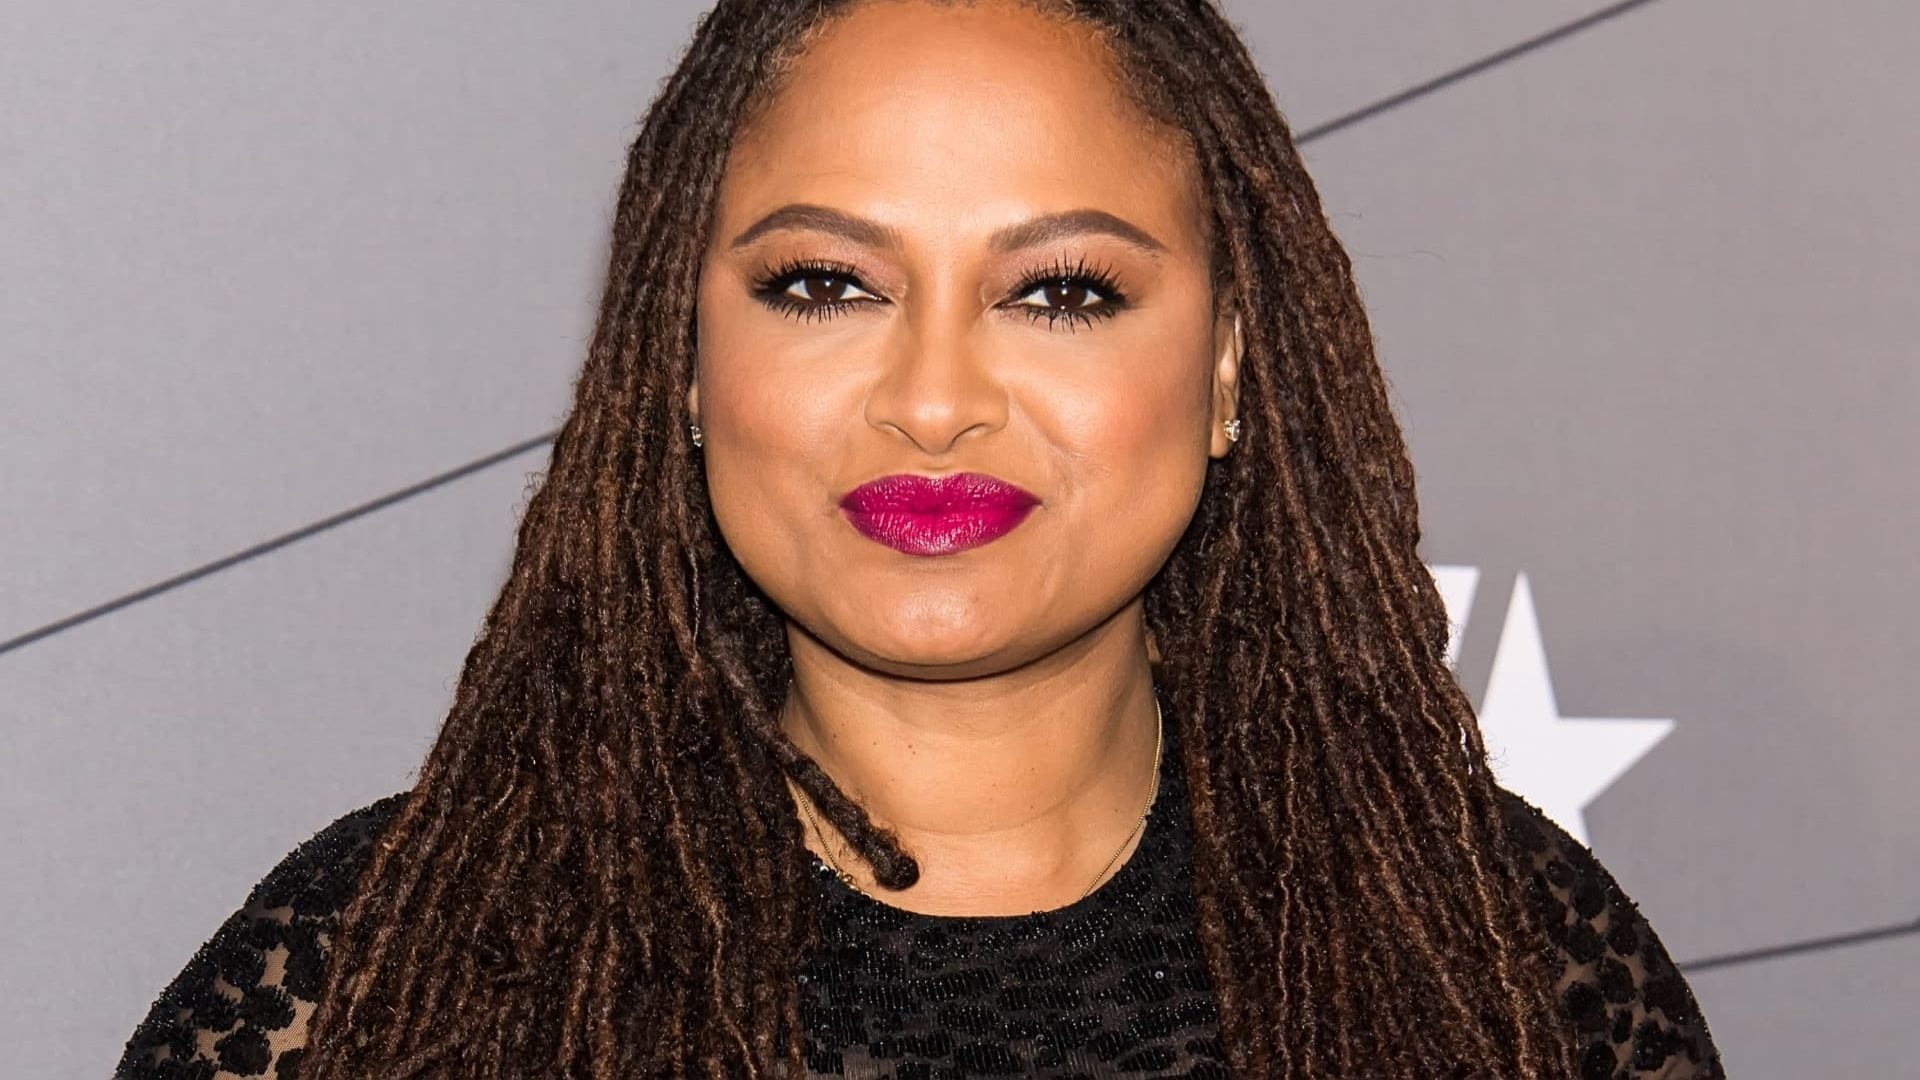 Prada Enlists Ava DuVernay To Help Take Steps Toward Correcting Diversity Issues